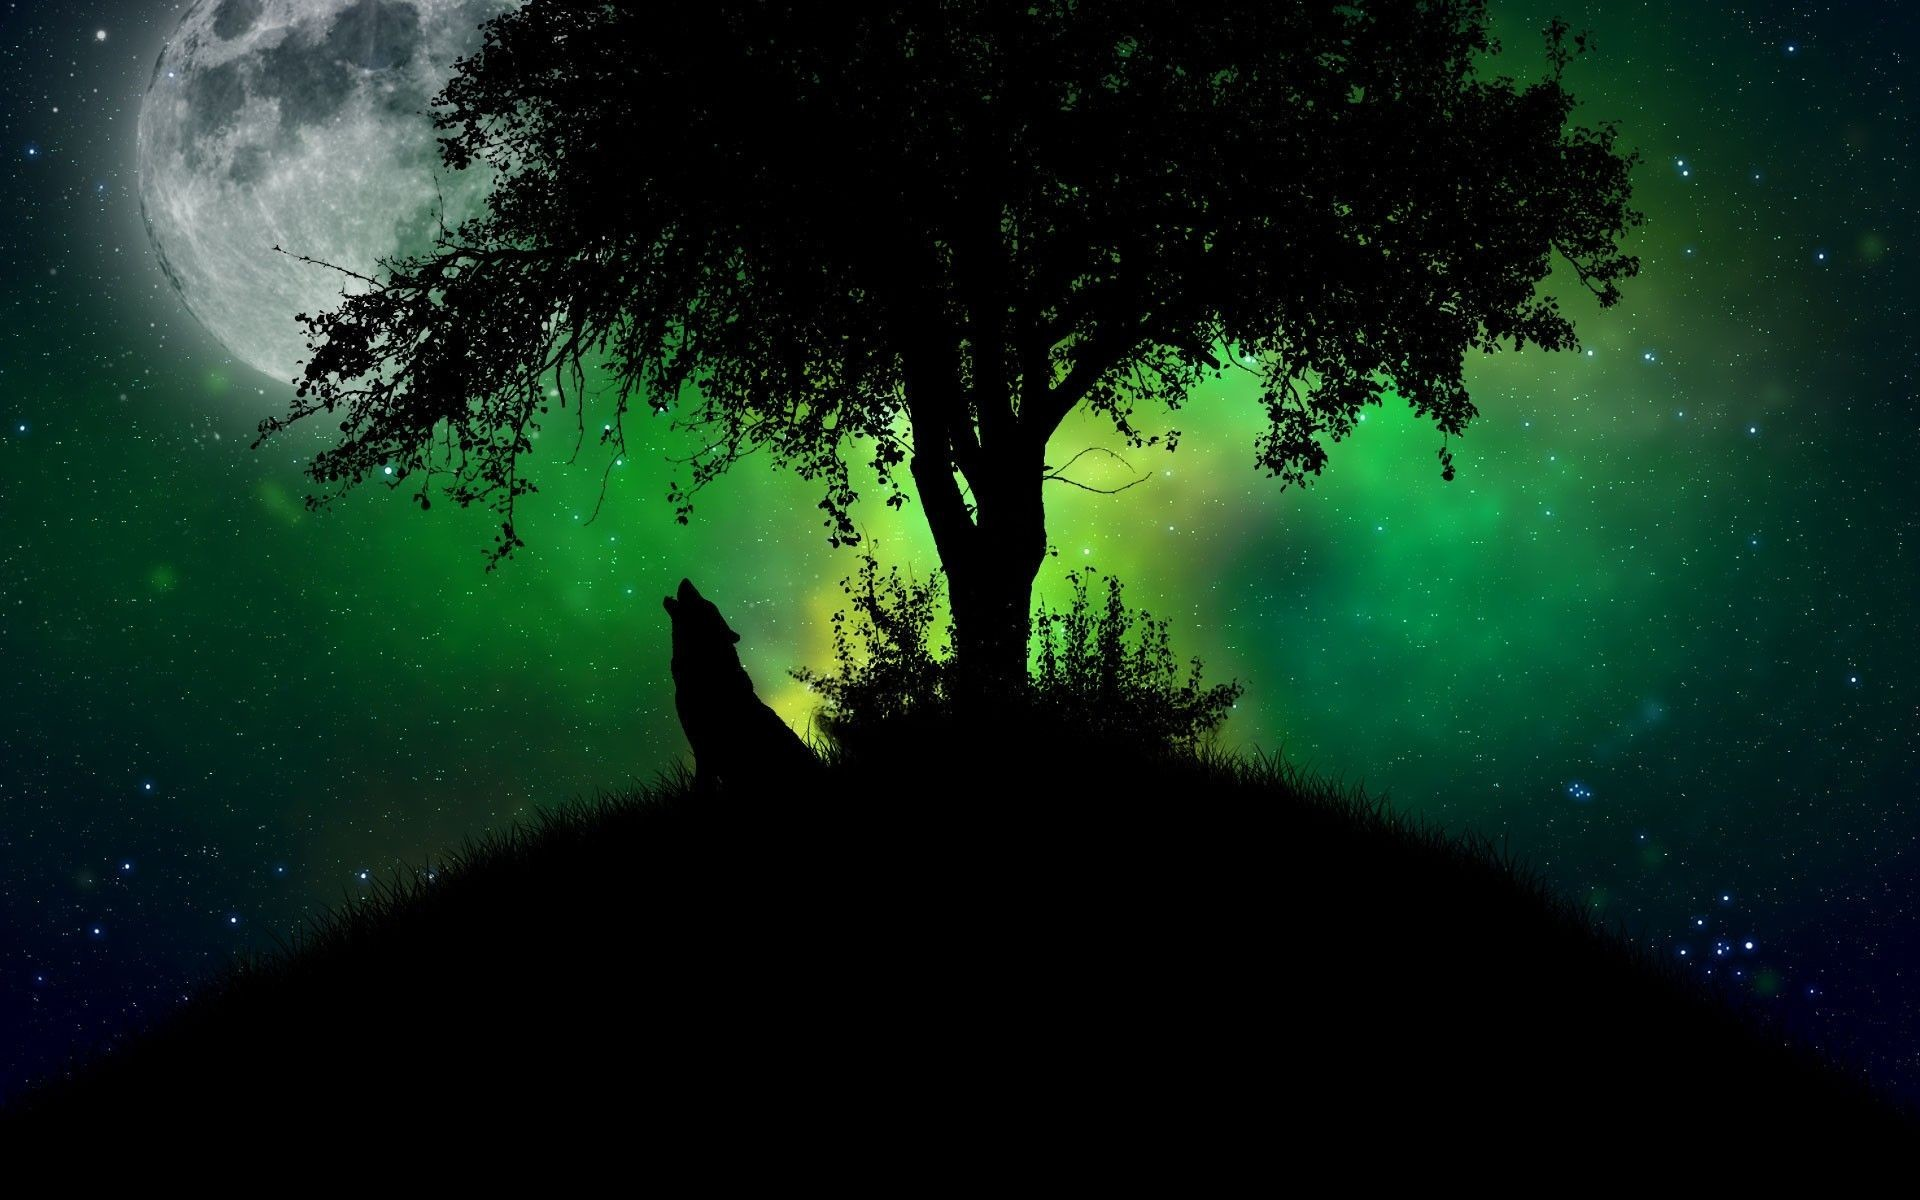 1920x1200 Howling wolf HD Wallpaper 1920x1080 Howling wolf HD Wallpaper